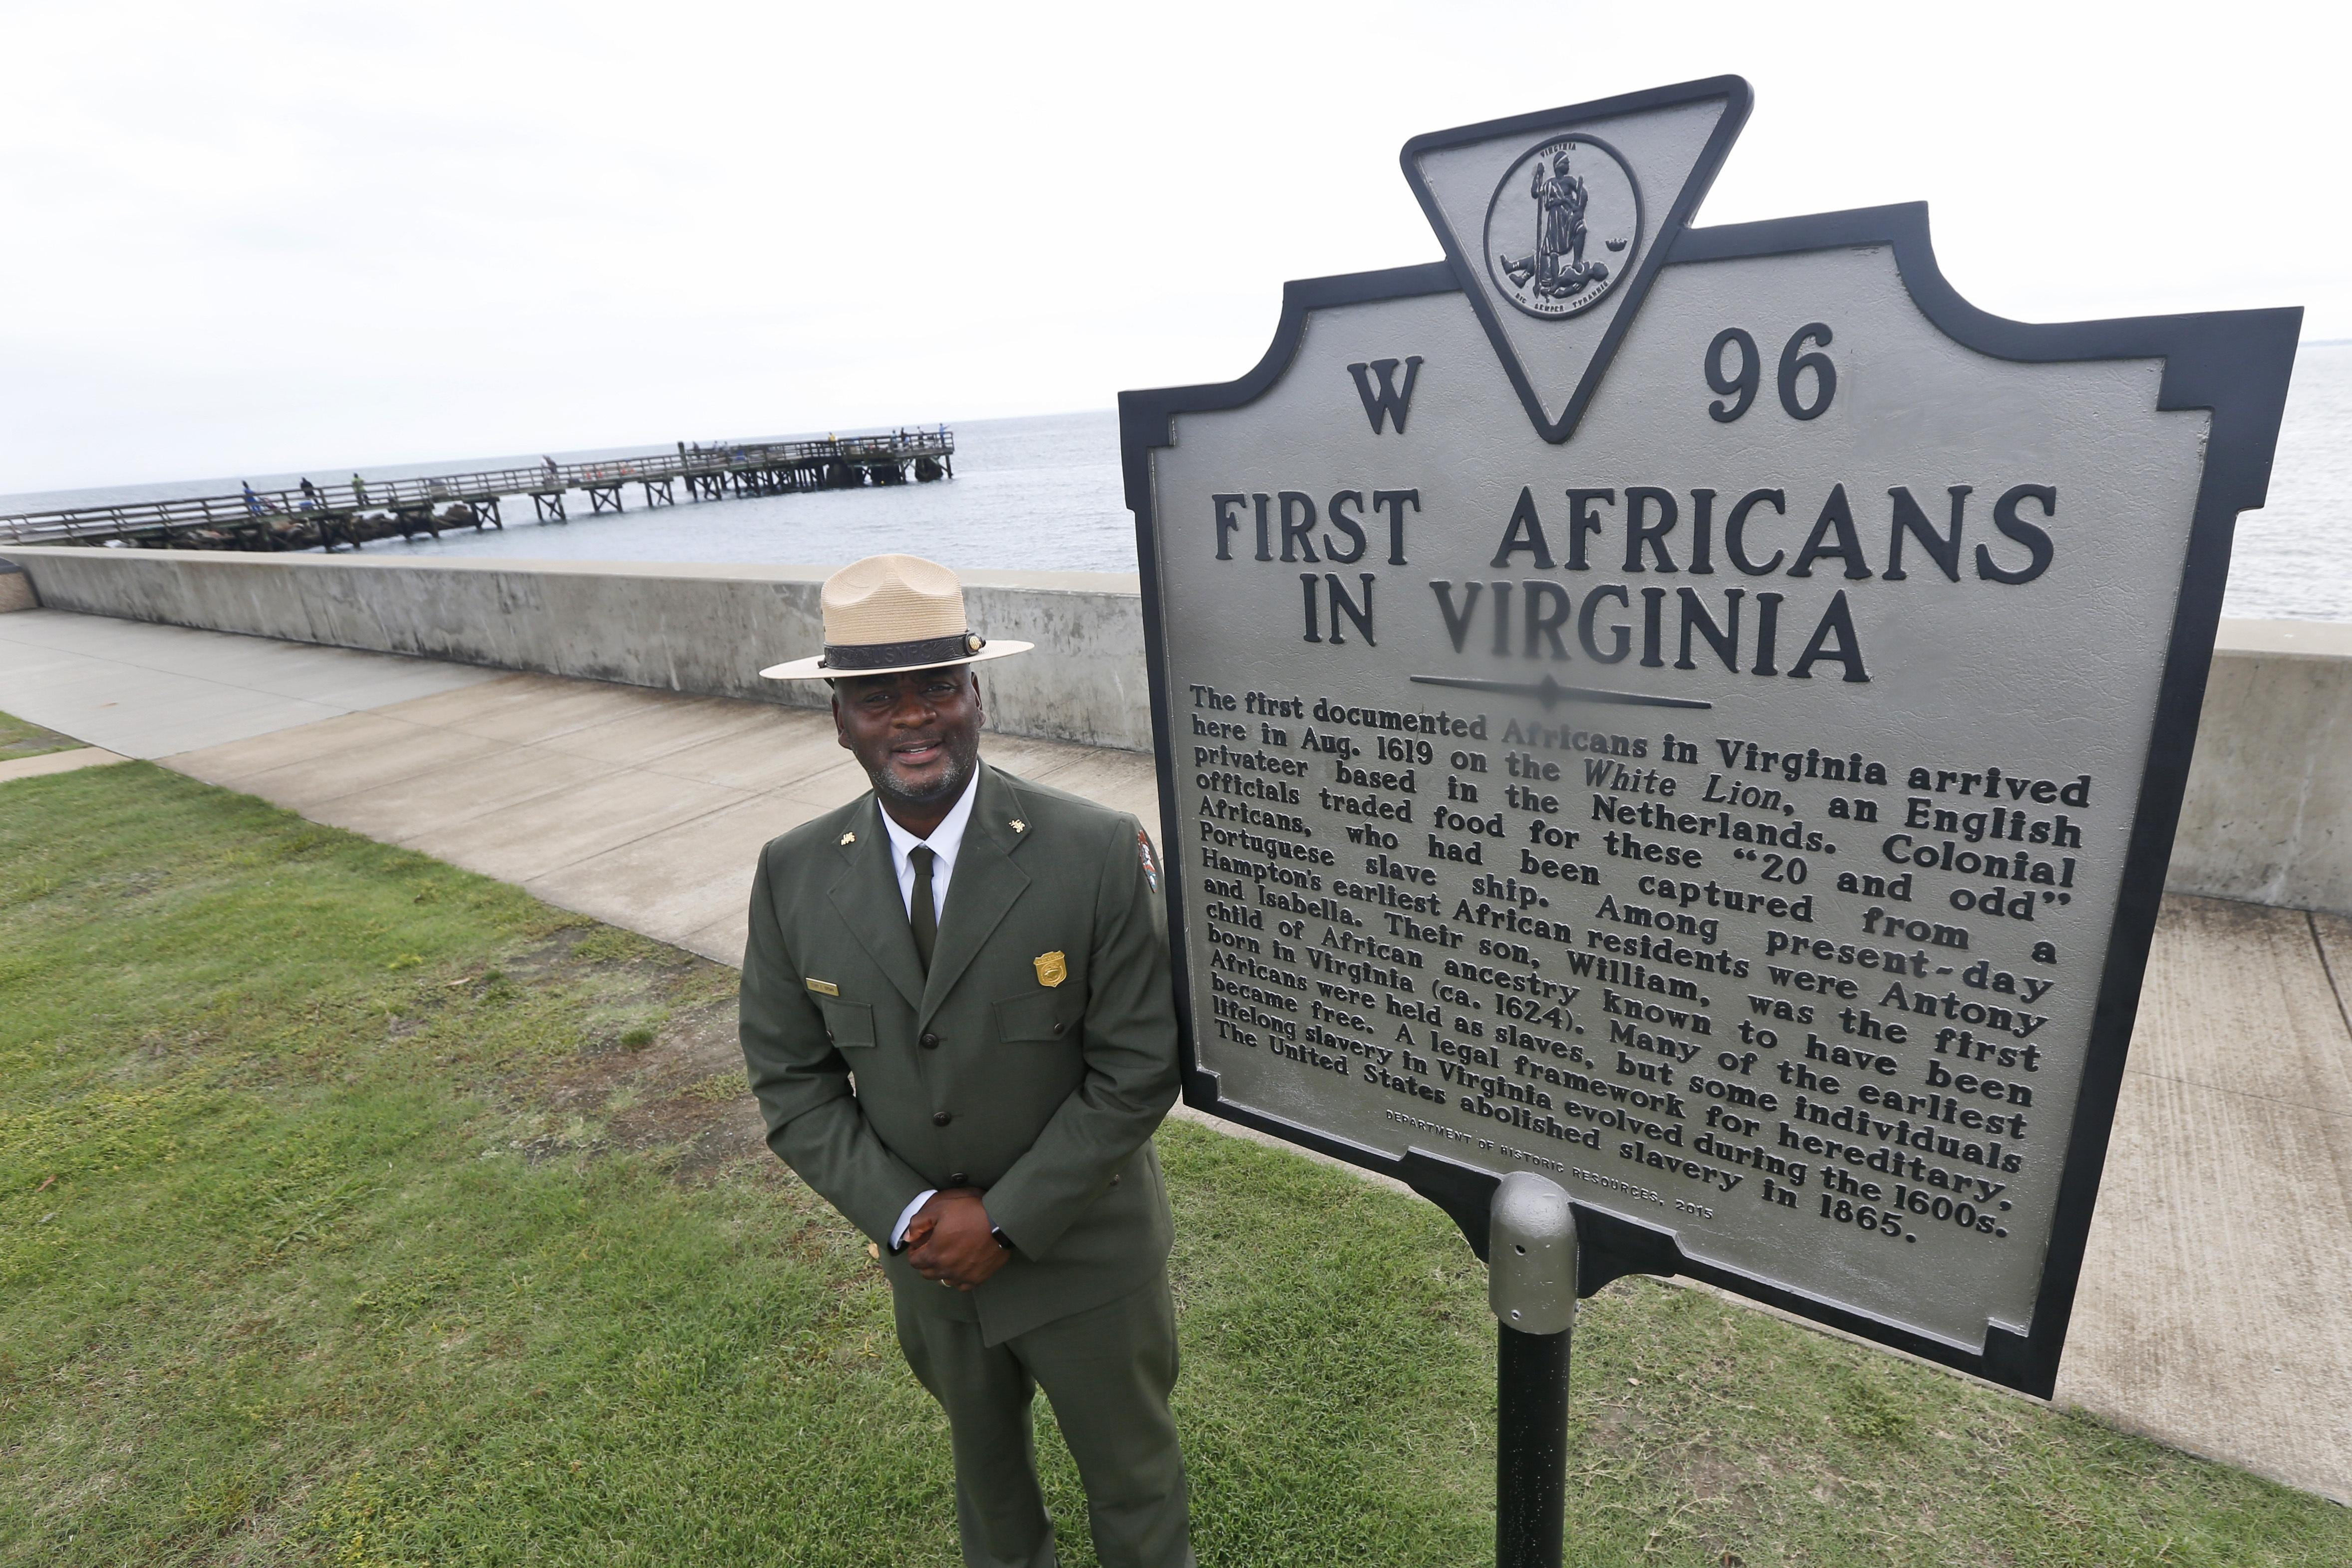 Poet, politicians to mark first enslaved Africans' arrival